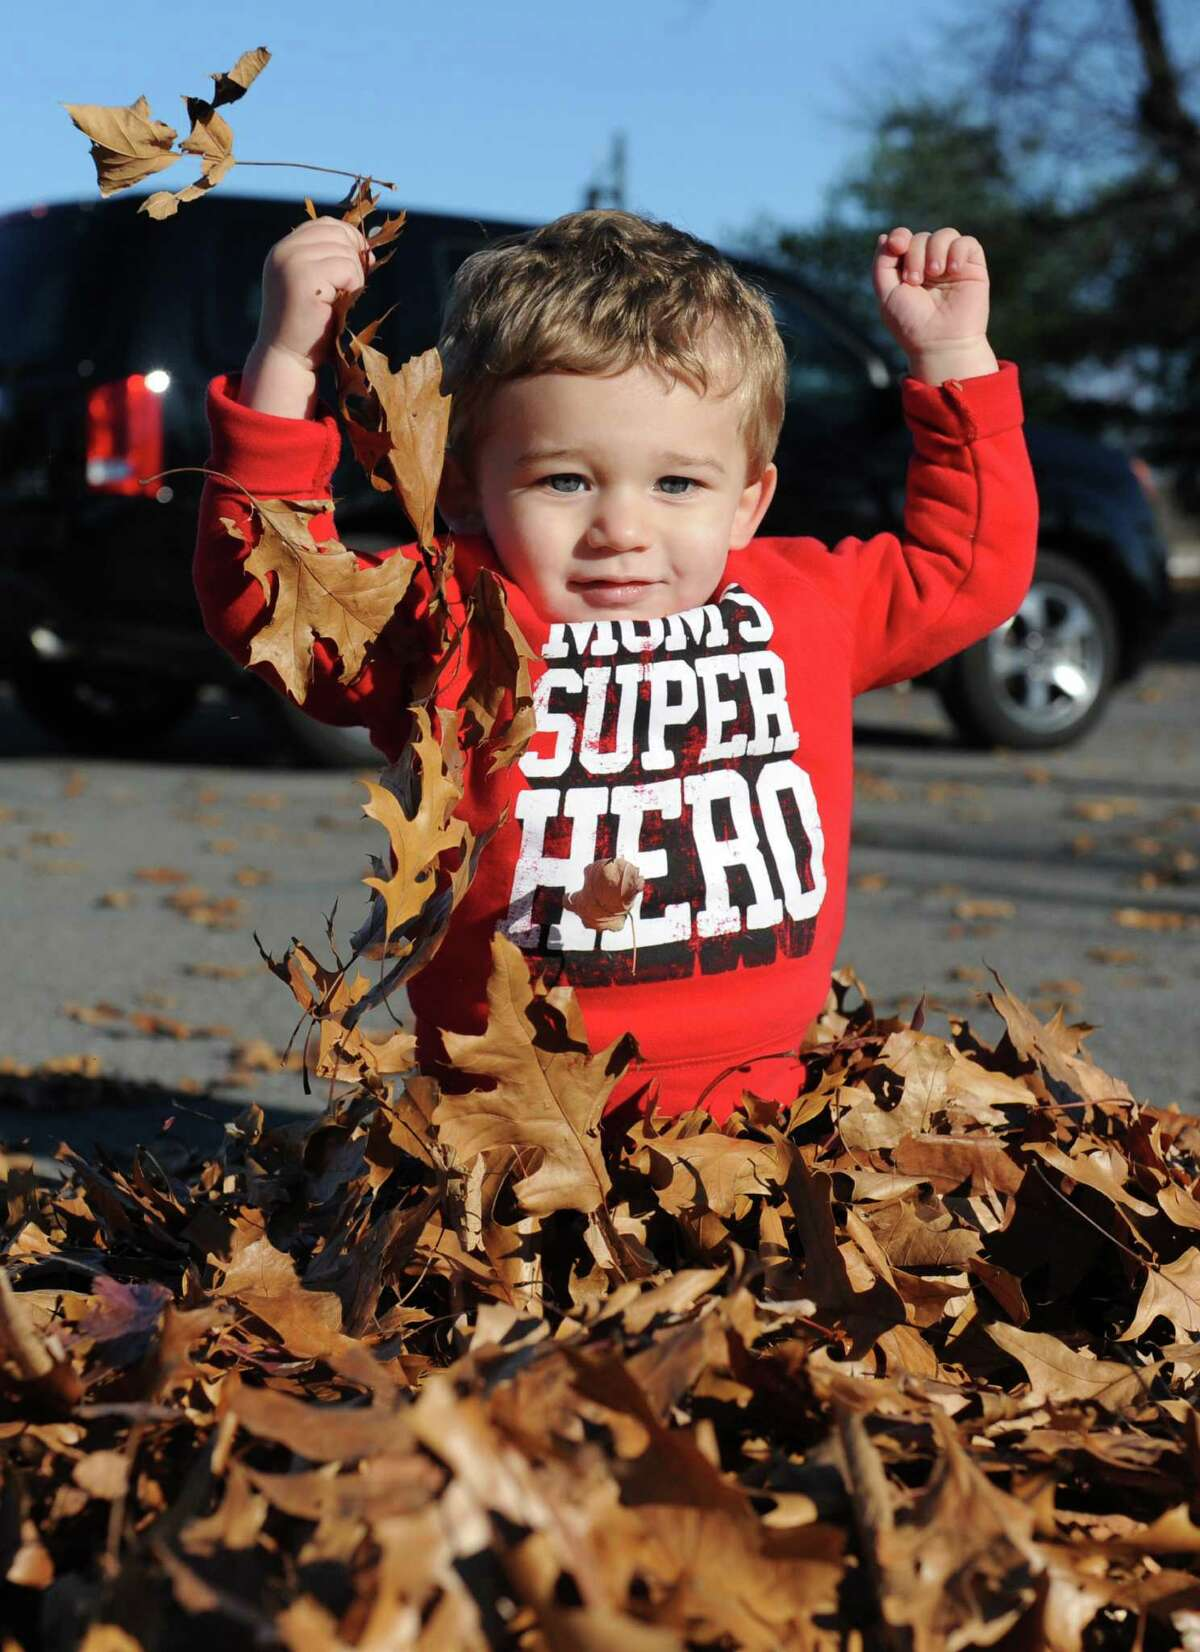 Hunter Lloyd of Schenectady, age 18 months, enjoys a mild day playing in leaves at The Crossings on Monday, Nov. 9, 2015, in Colonie, N.Y. (Lori Van Buren / Times Union))